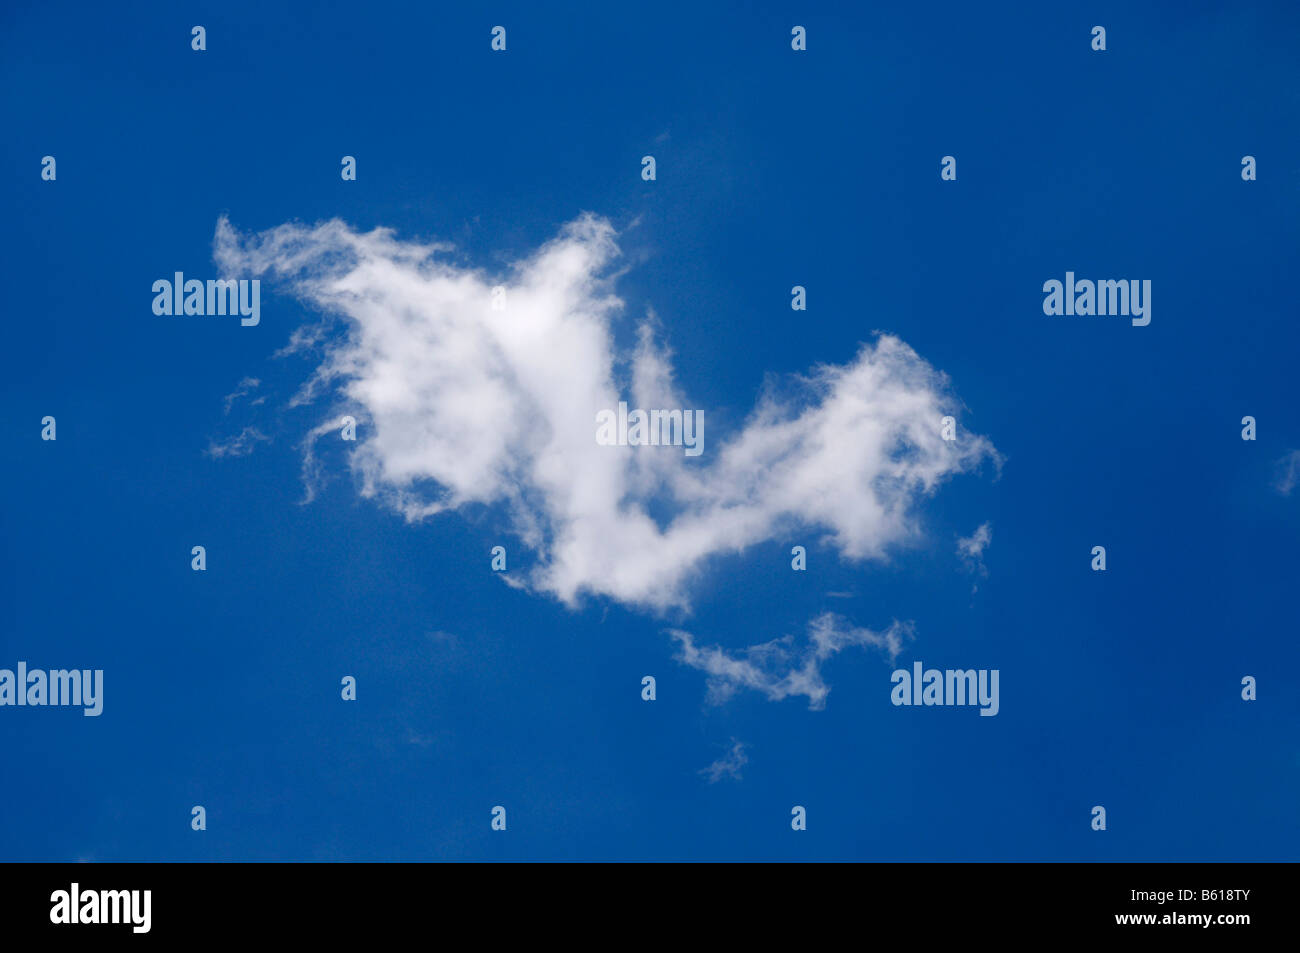 Cirrus cloud in a blue sky - Stock Image